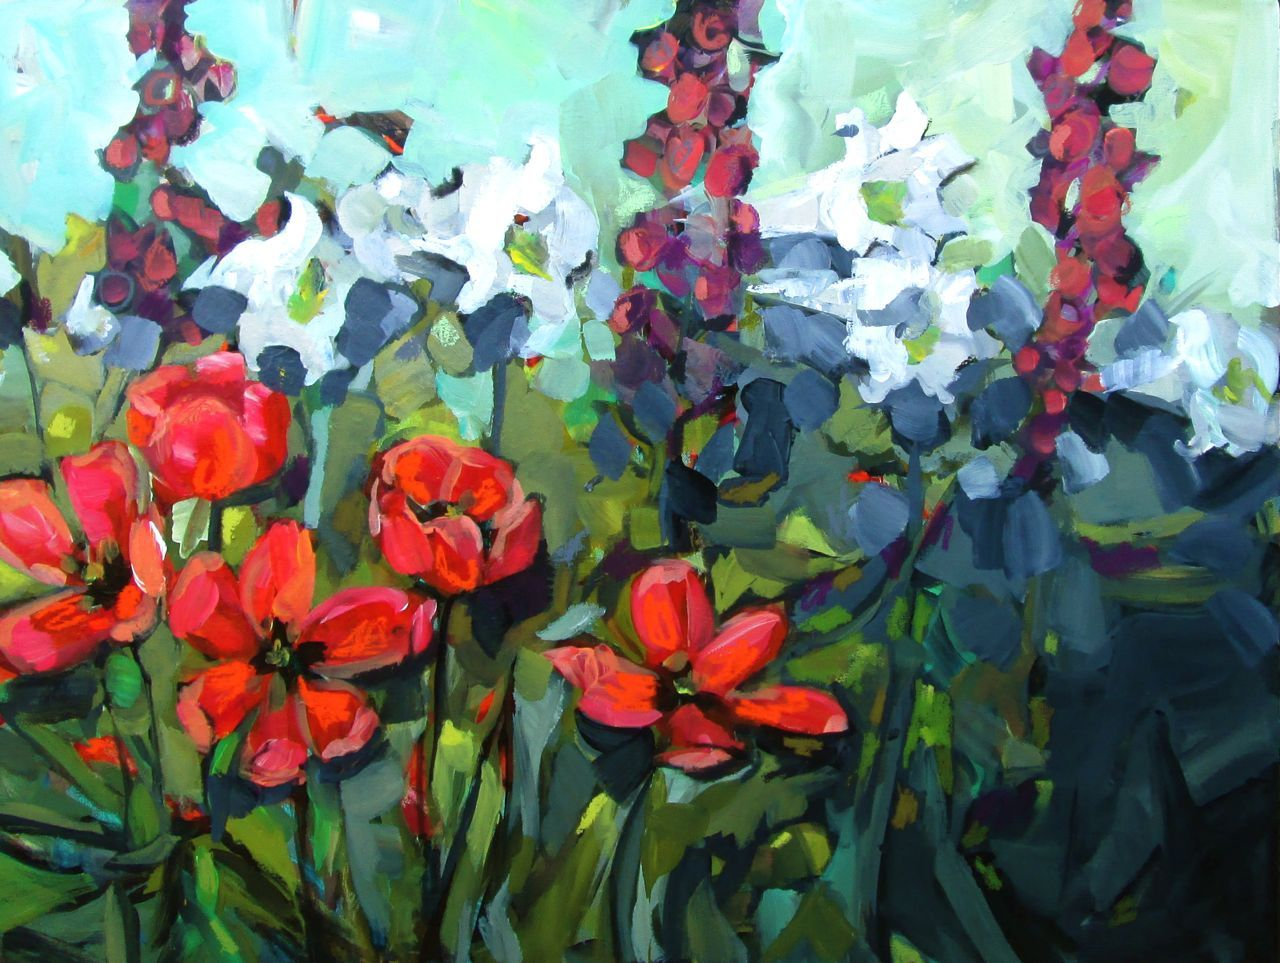 Jill Van Sickle \'Tulips, Lilies, Foxgloves\' painting, decor, floral ...